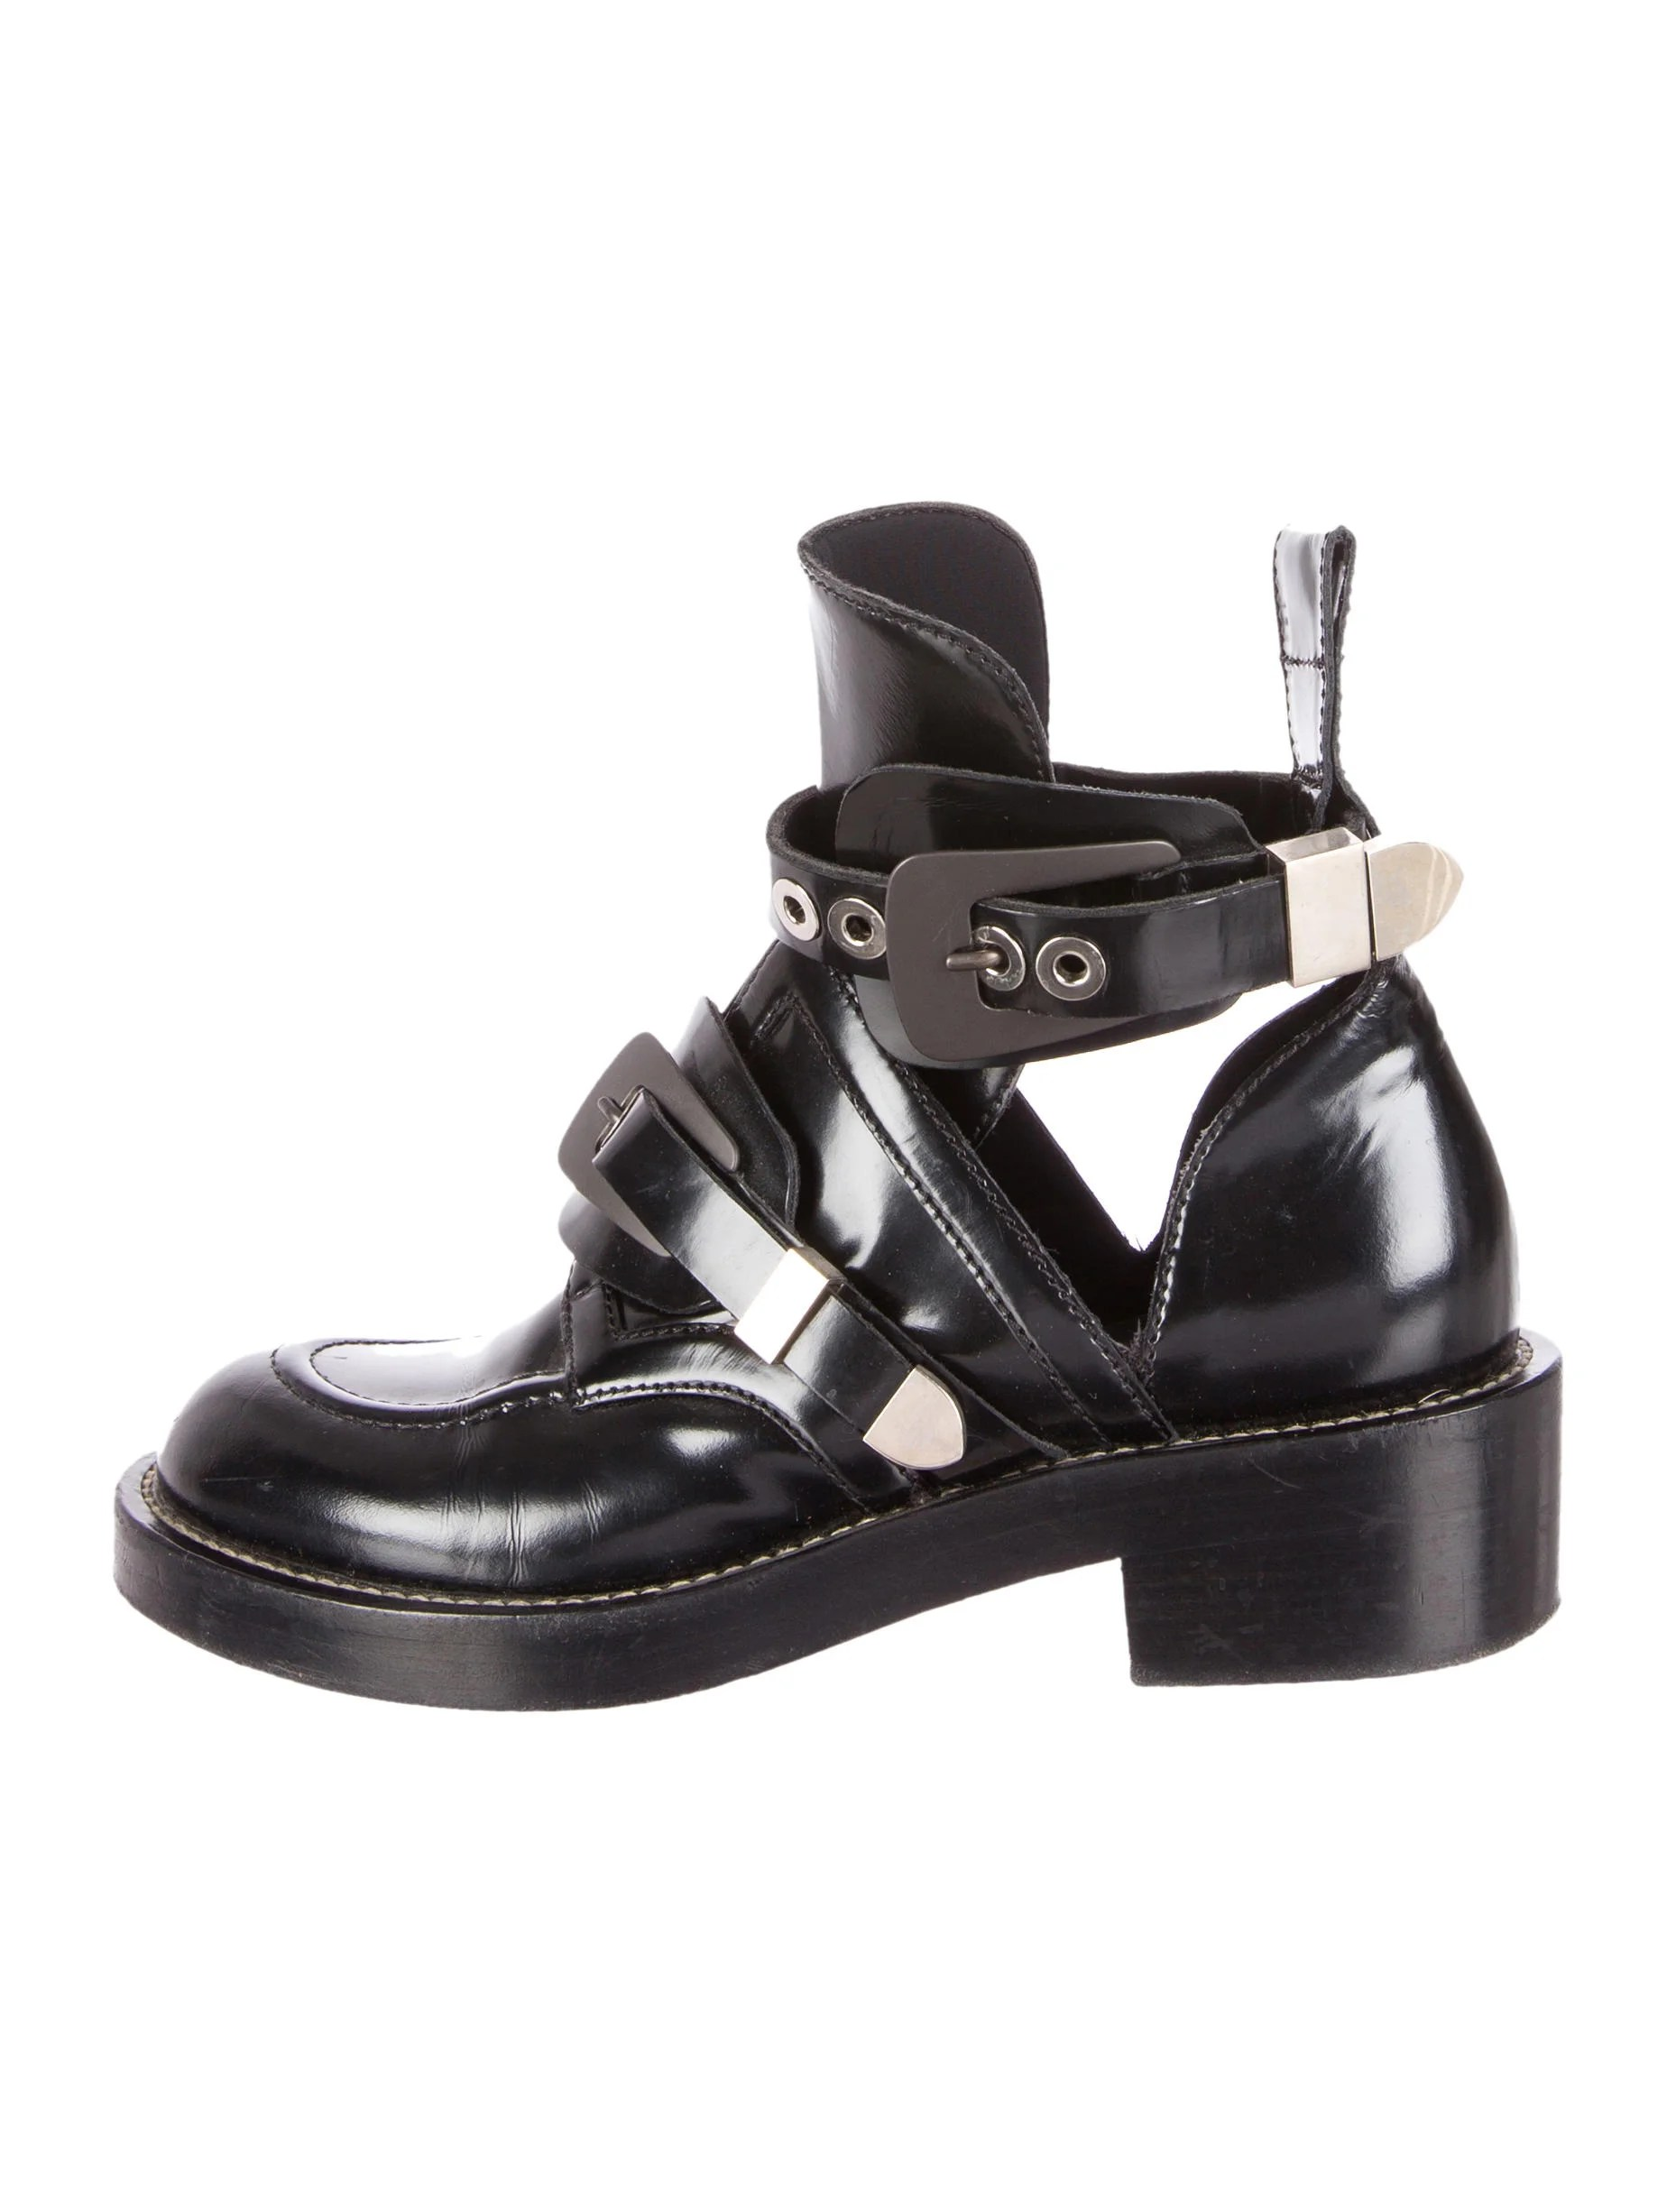 Balenciaga Leather Ceinture Ankle Boots Shoes Bal33459